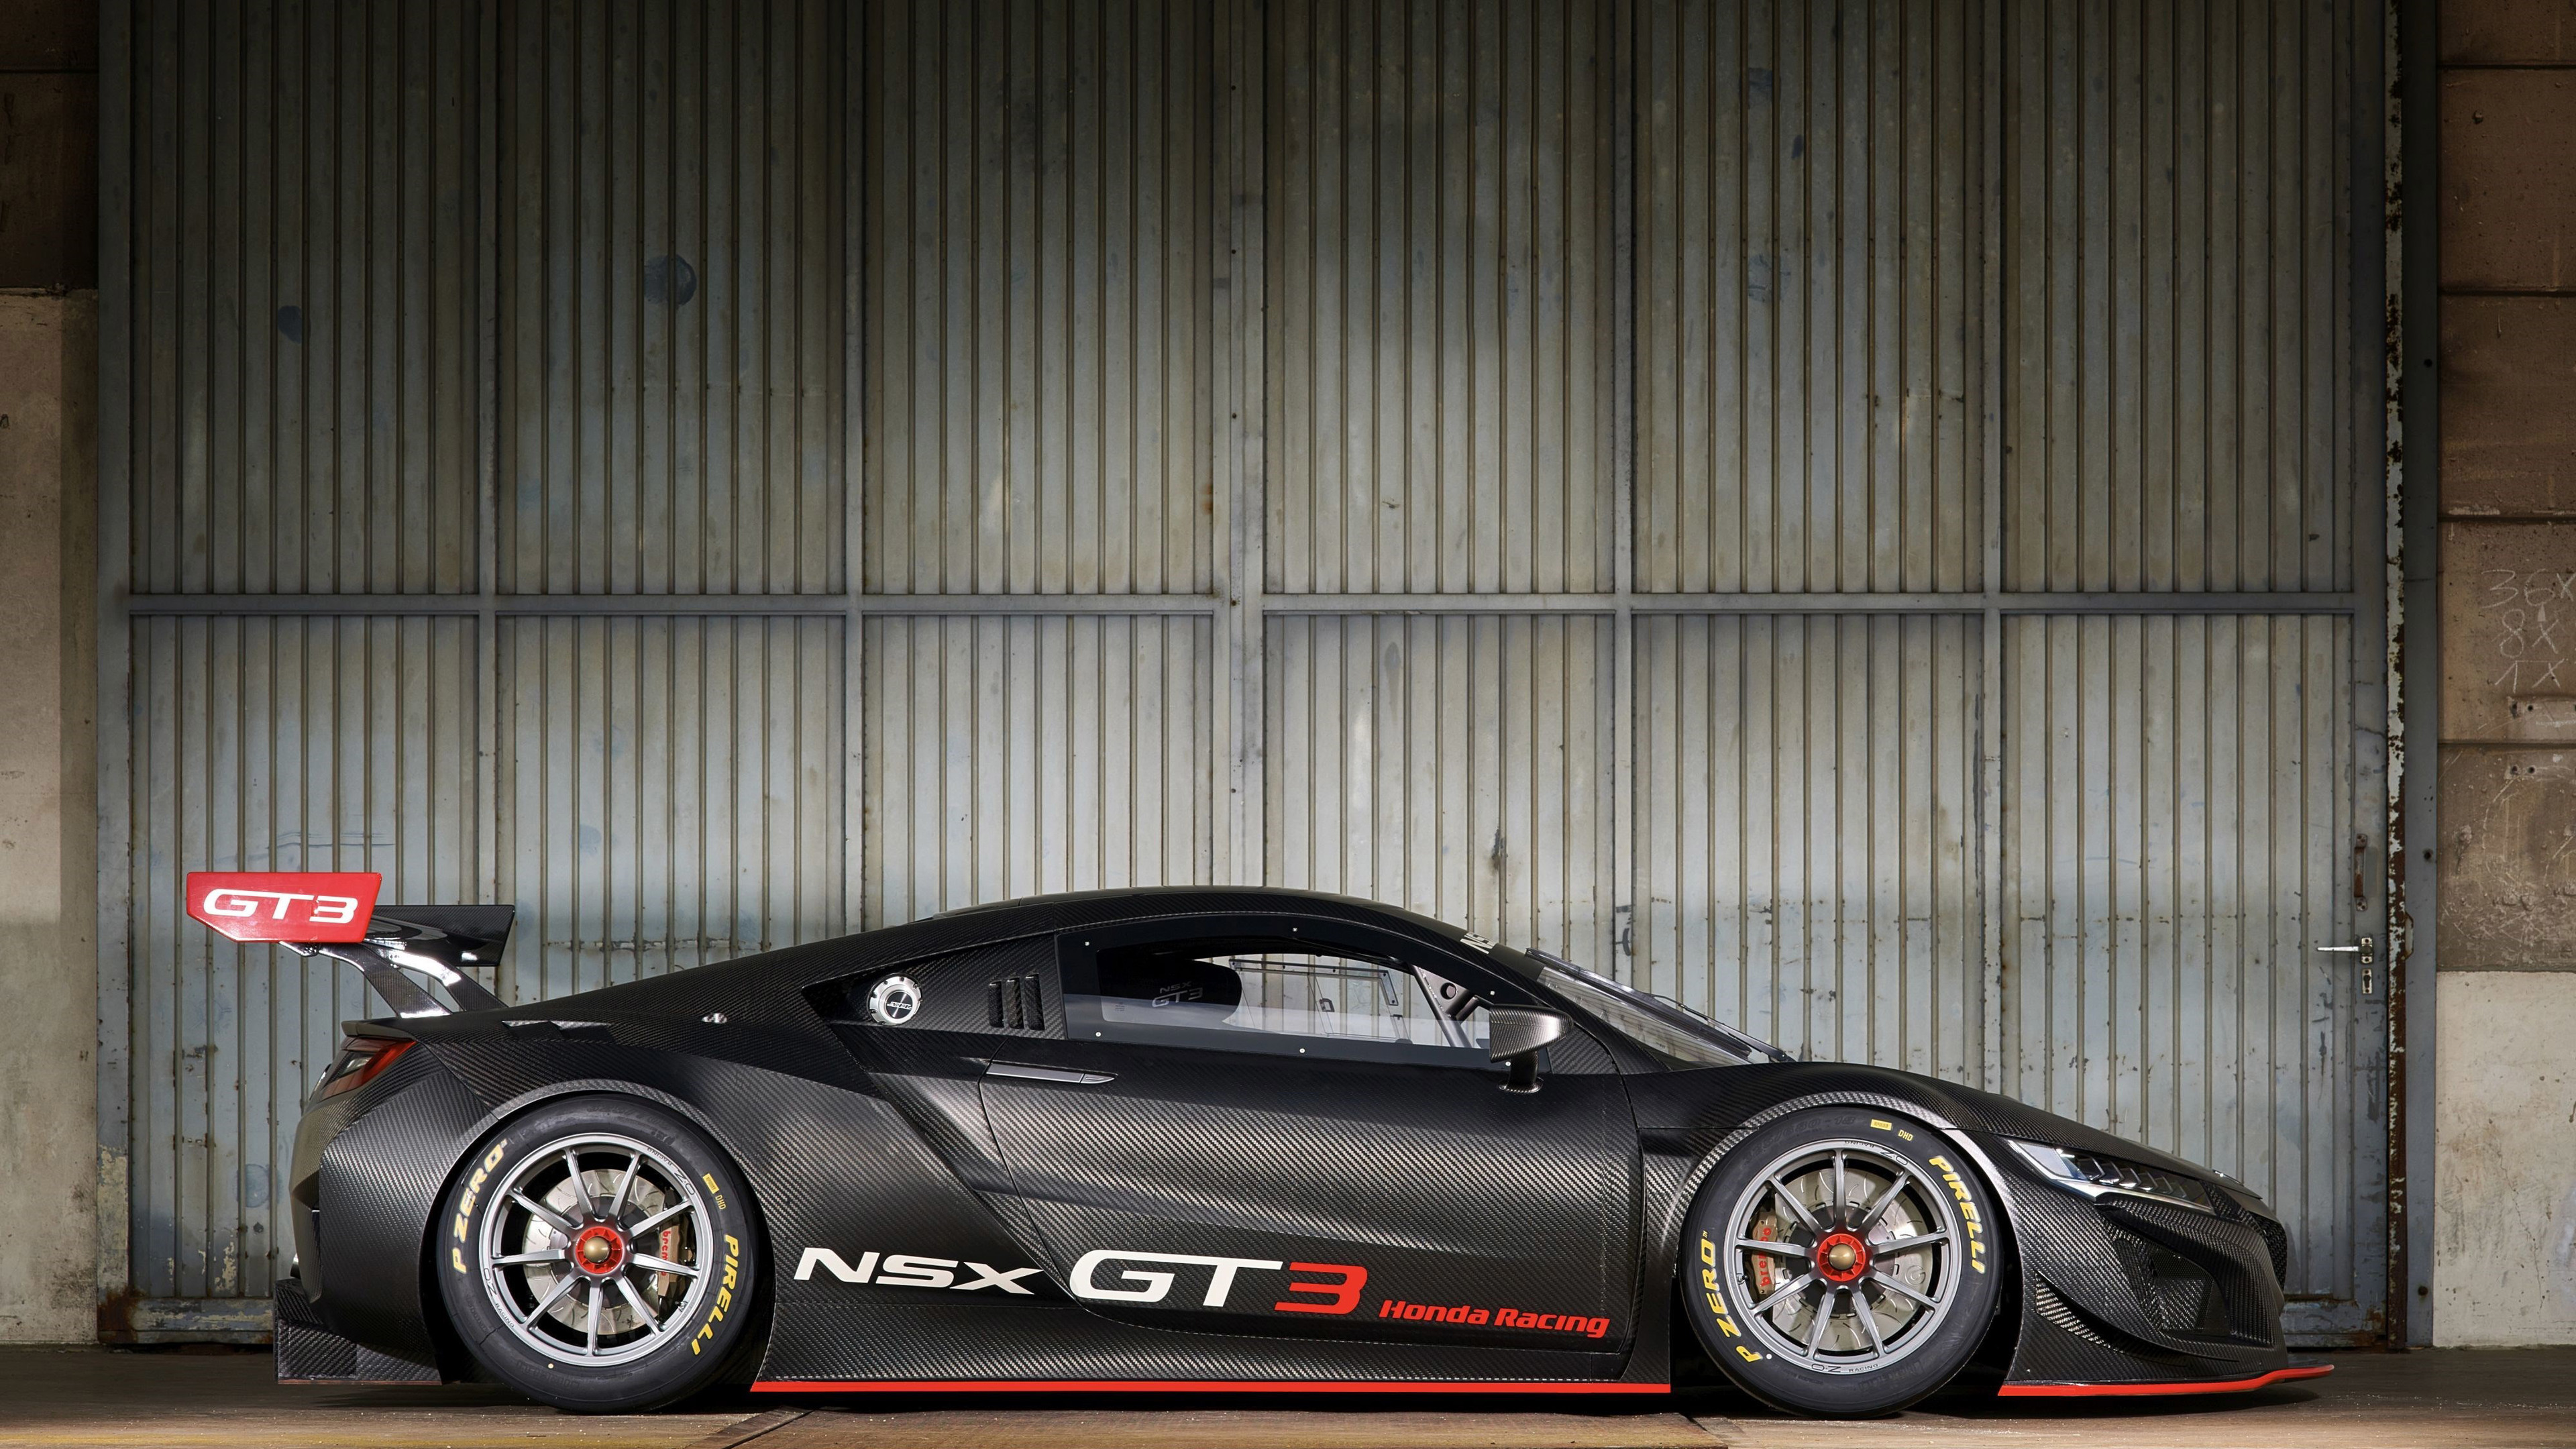 2017 honda nsx gt3 4k 1539106035 - 2017 Honda Nsx Gt3 4k - honda wallpapers, honda nsx wallpapers, honda nsx gt3 wallpapers, hd-wallpapers, cars wallpapers, 4k-wallpapers, 2017 cars wallpapers